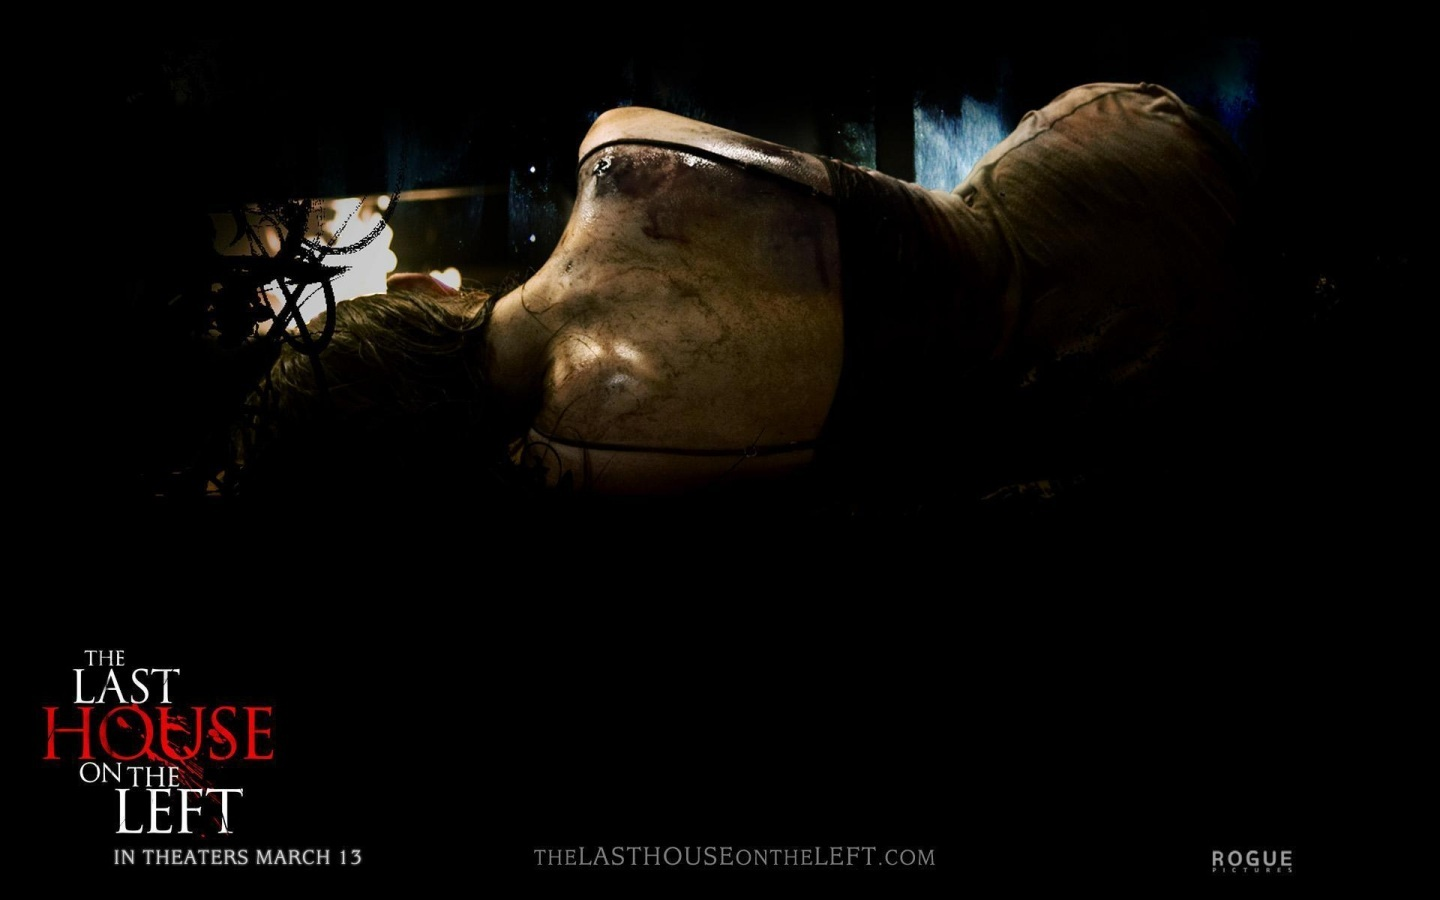 horror movies wallpapers 320x480 mobile - photo #12